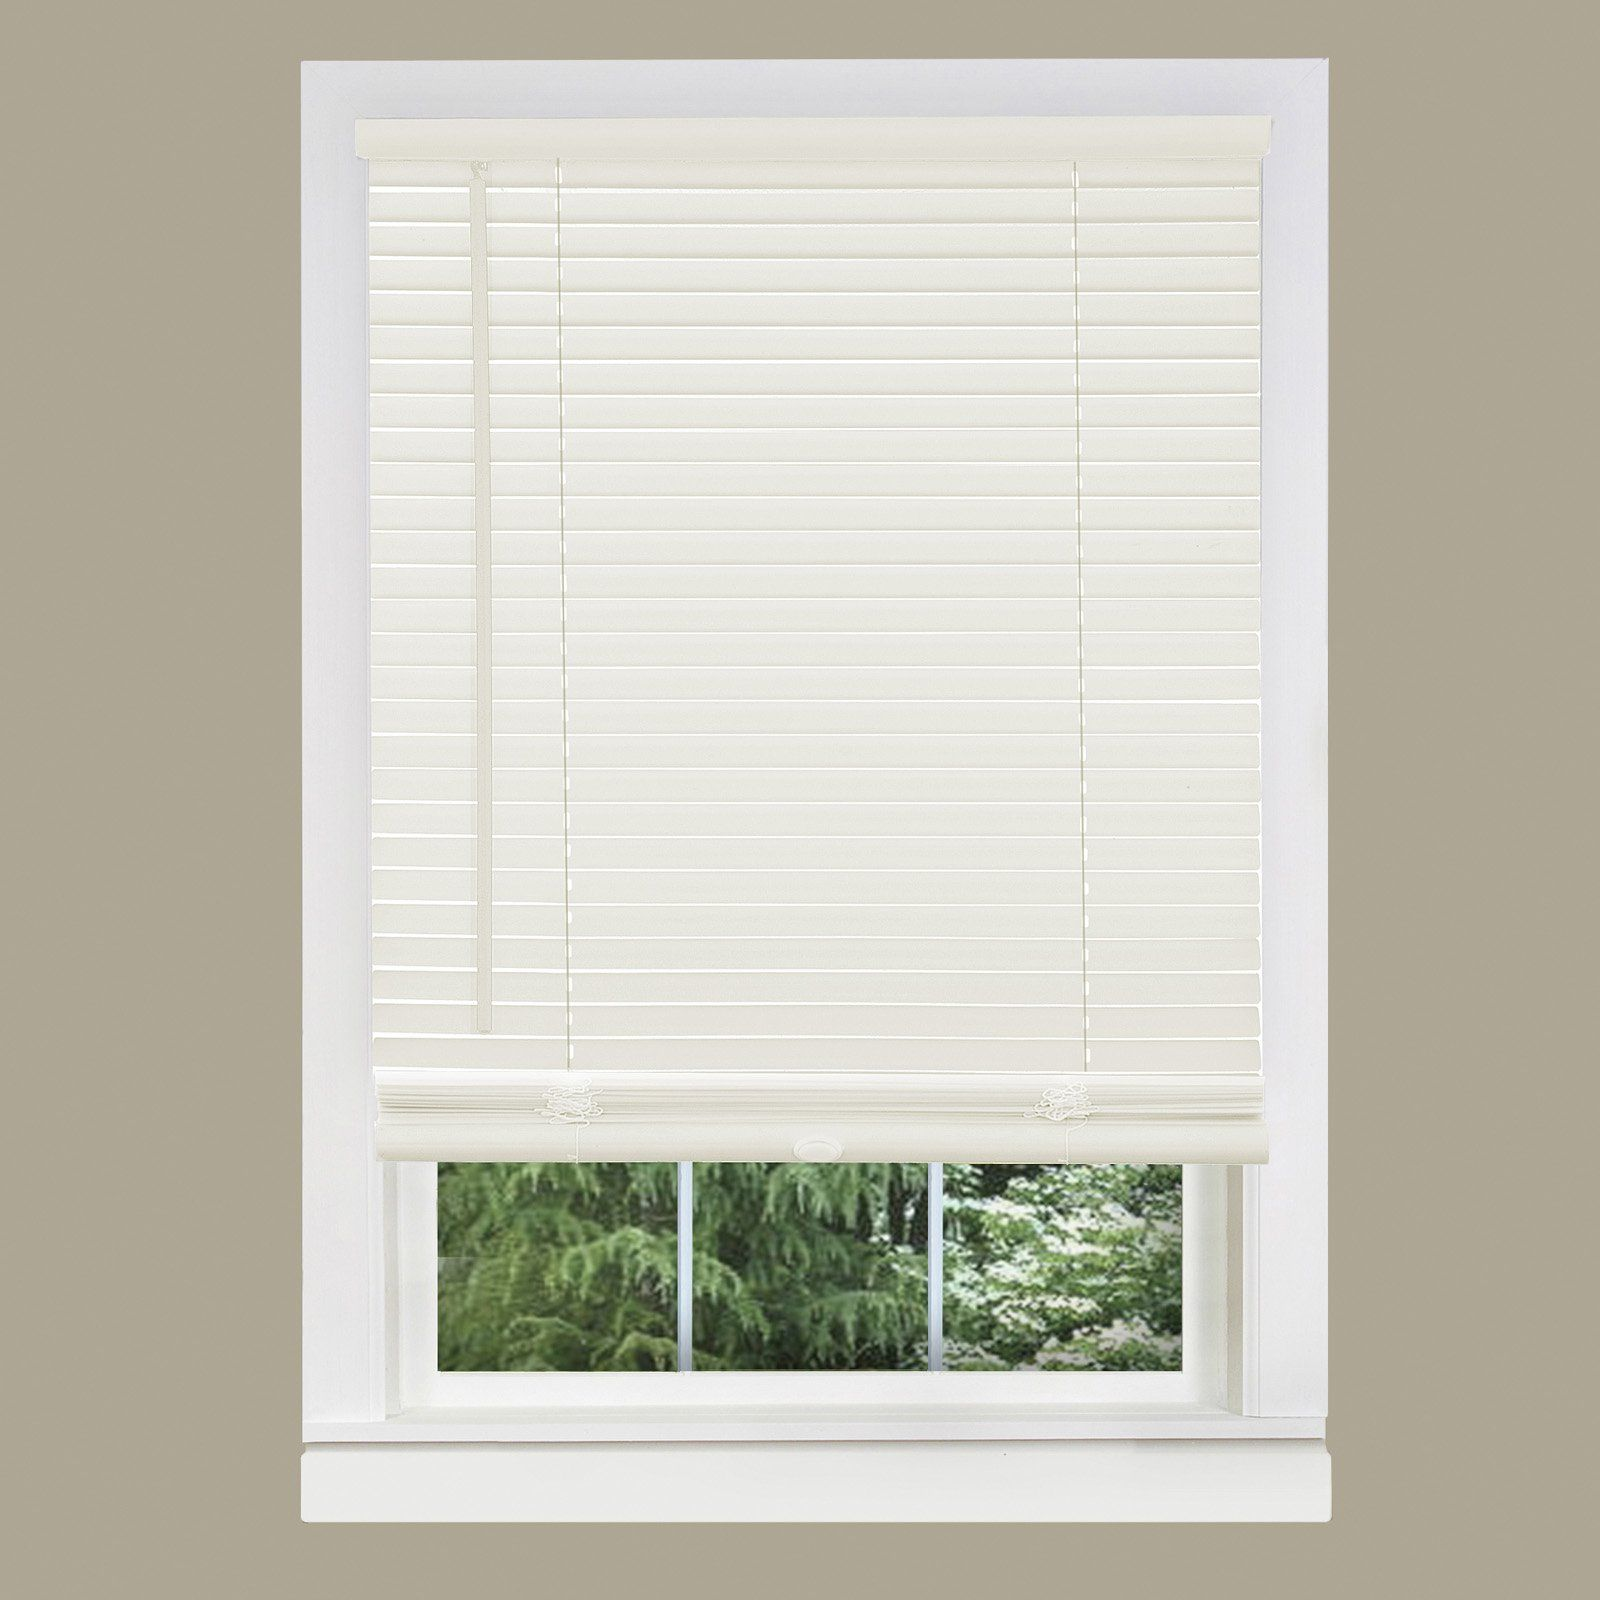 Achim 1 In Gii Morningstar Cordless Vinyl Mini Blinds Alabaster Cordless Blinds Vinyl Mini Blinds Blinds For Windows